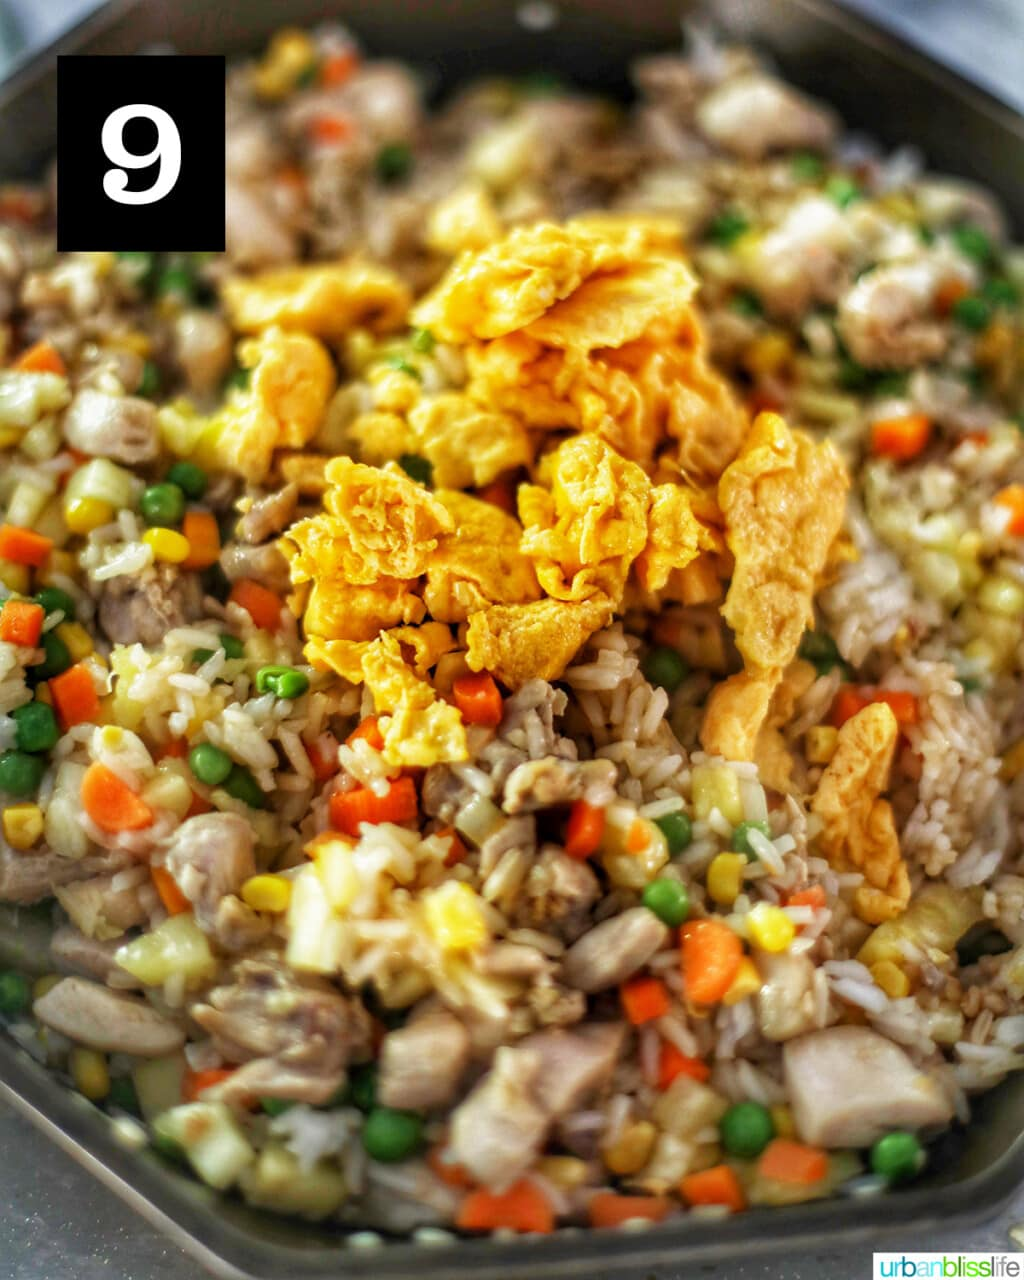 eggs on top of fried rice